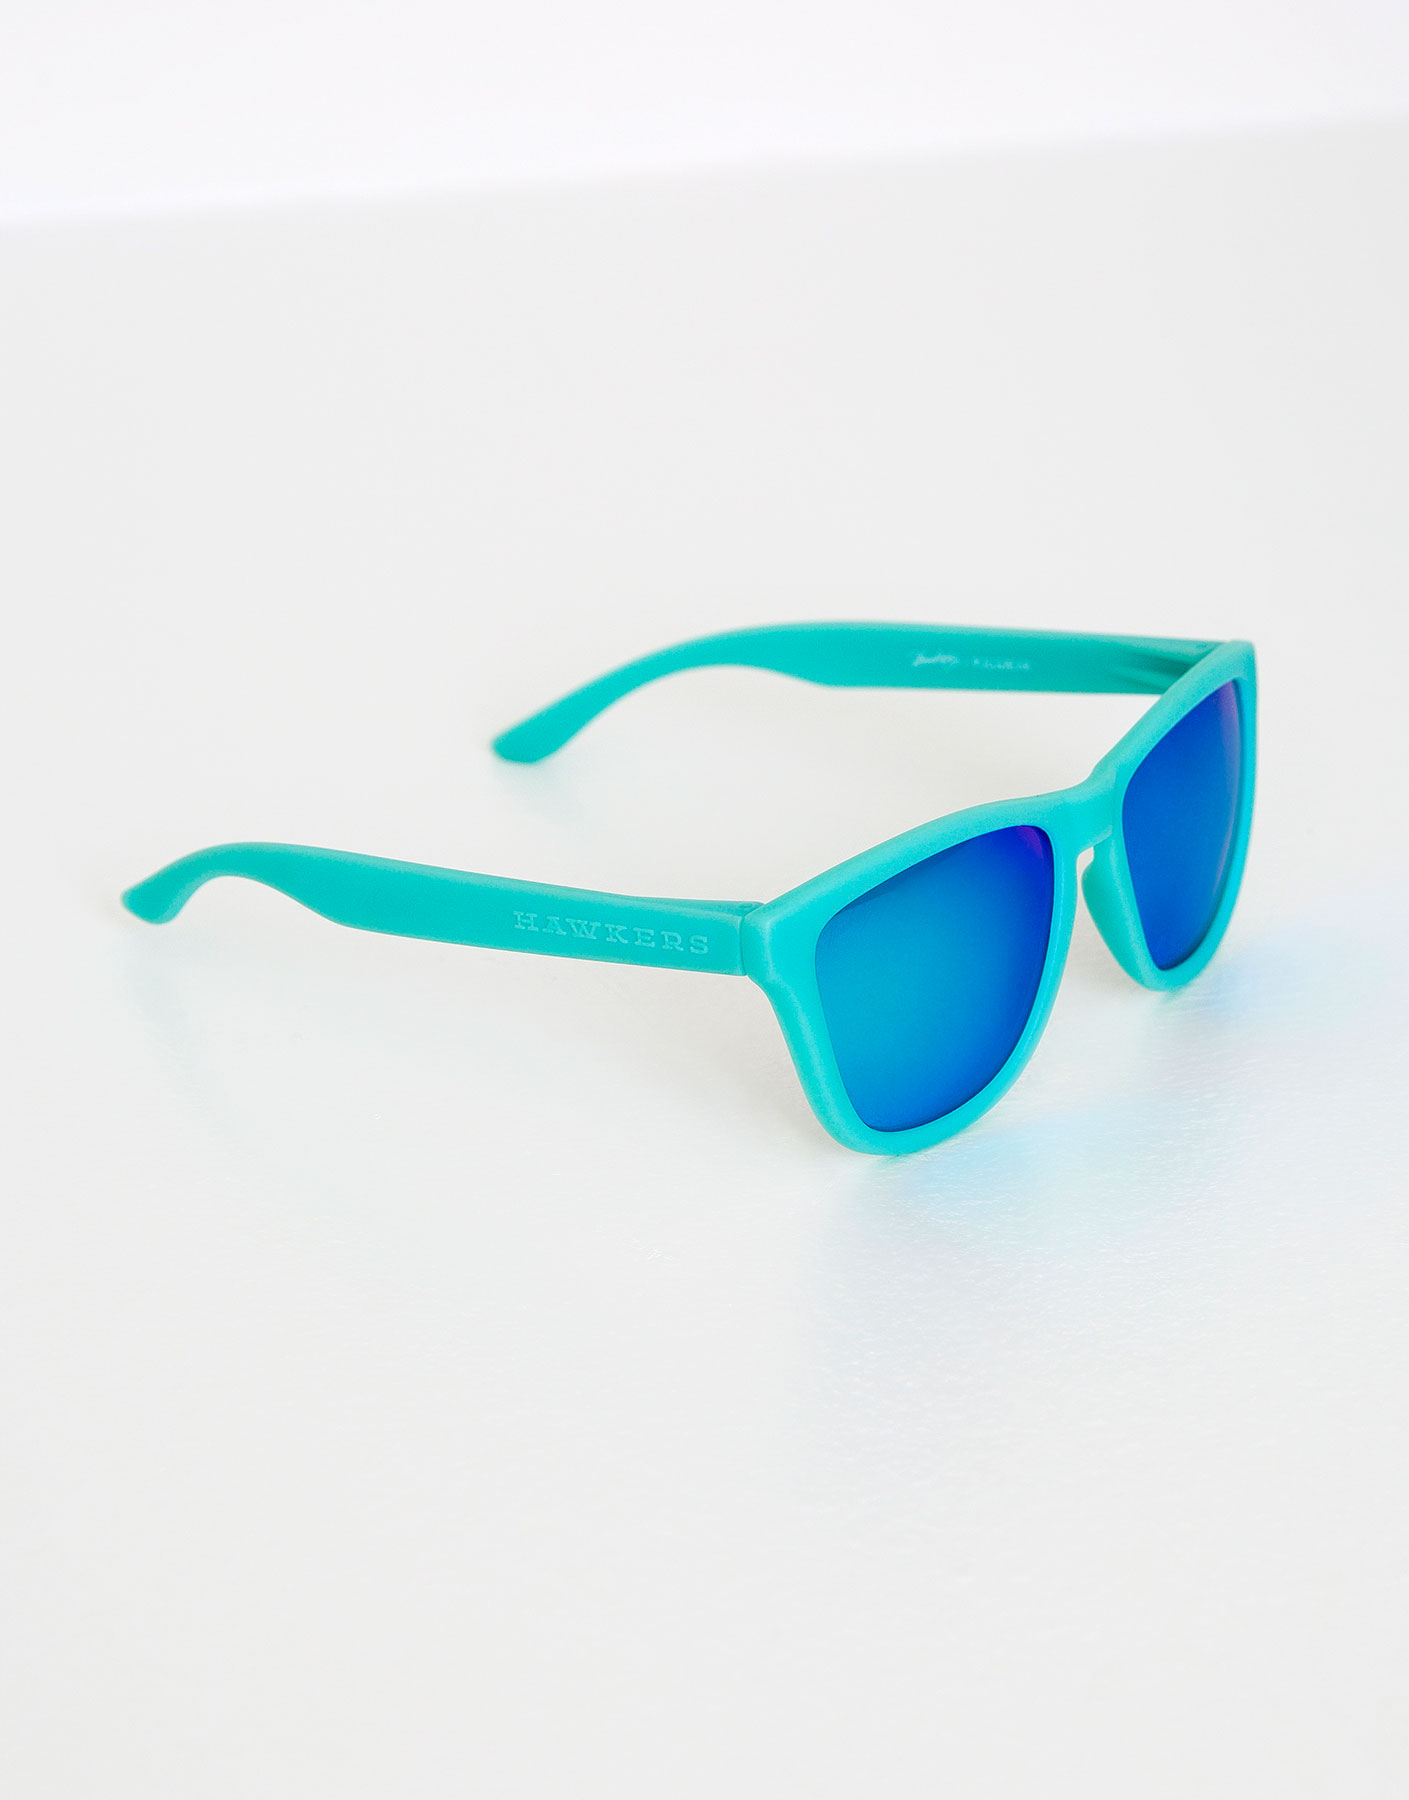 Lunettes de soleil hawkers turquoise clear blue one